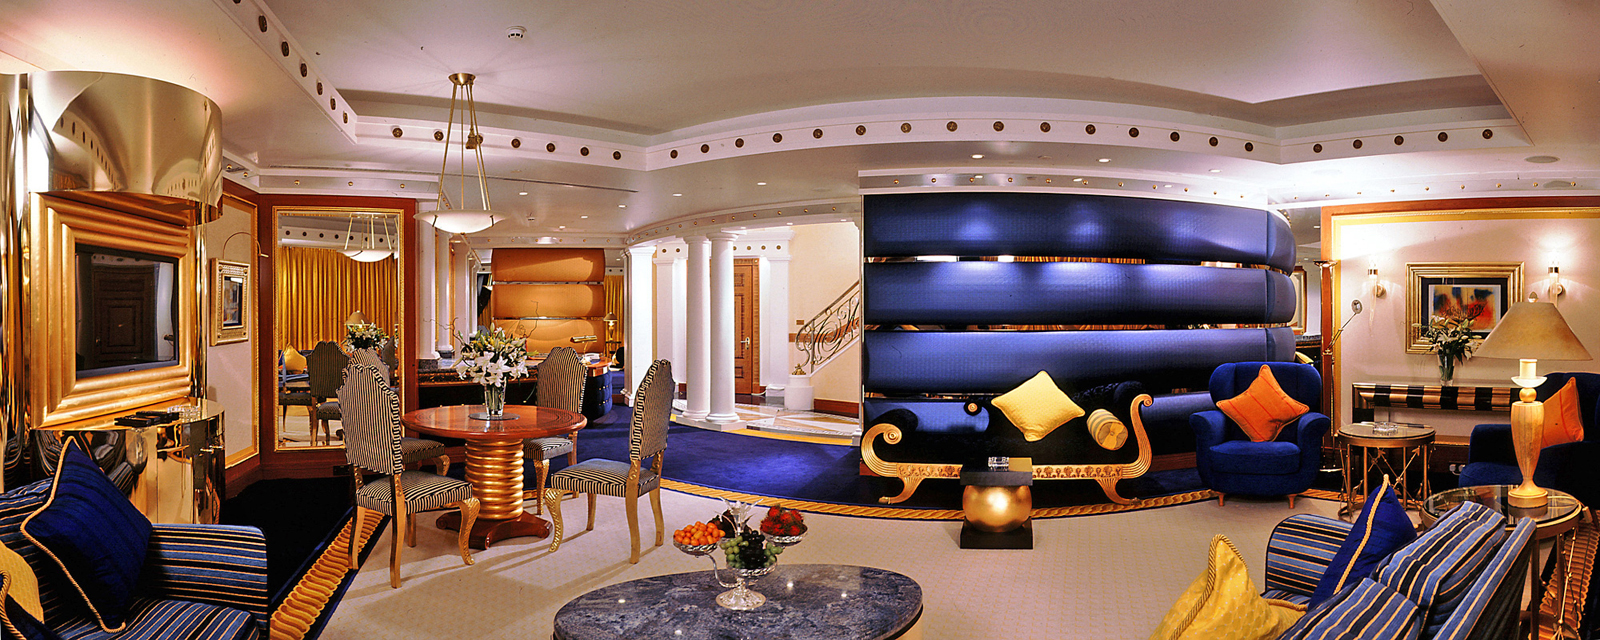 dubai underwater hotel prices browse info on dubai